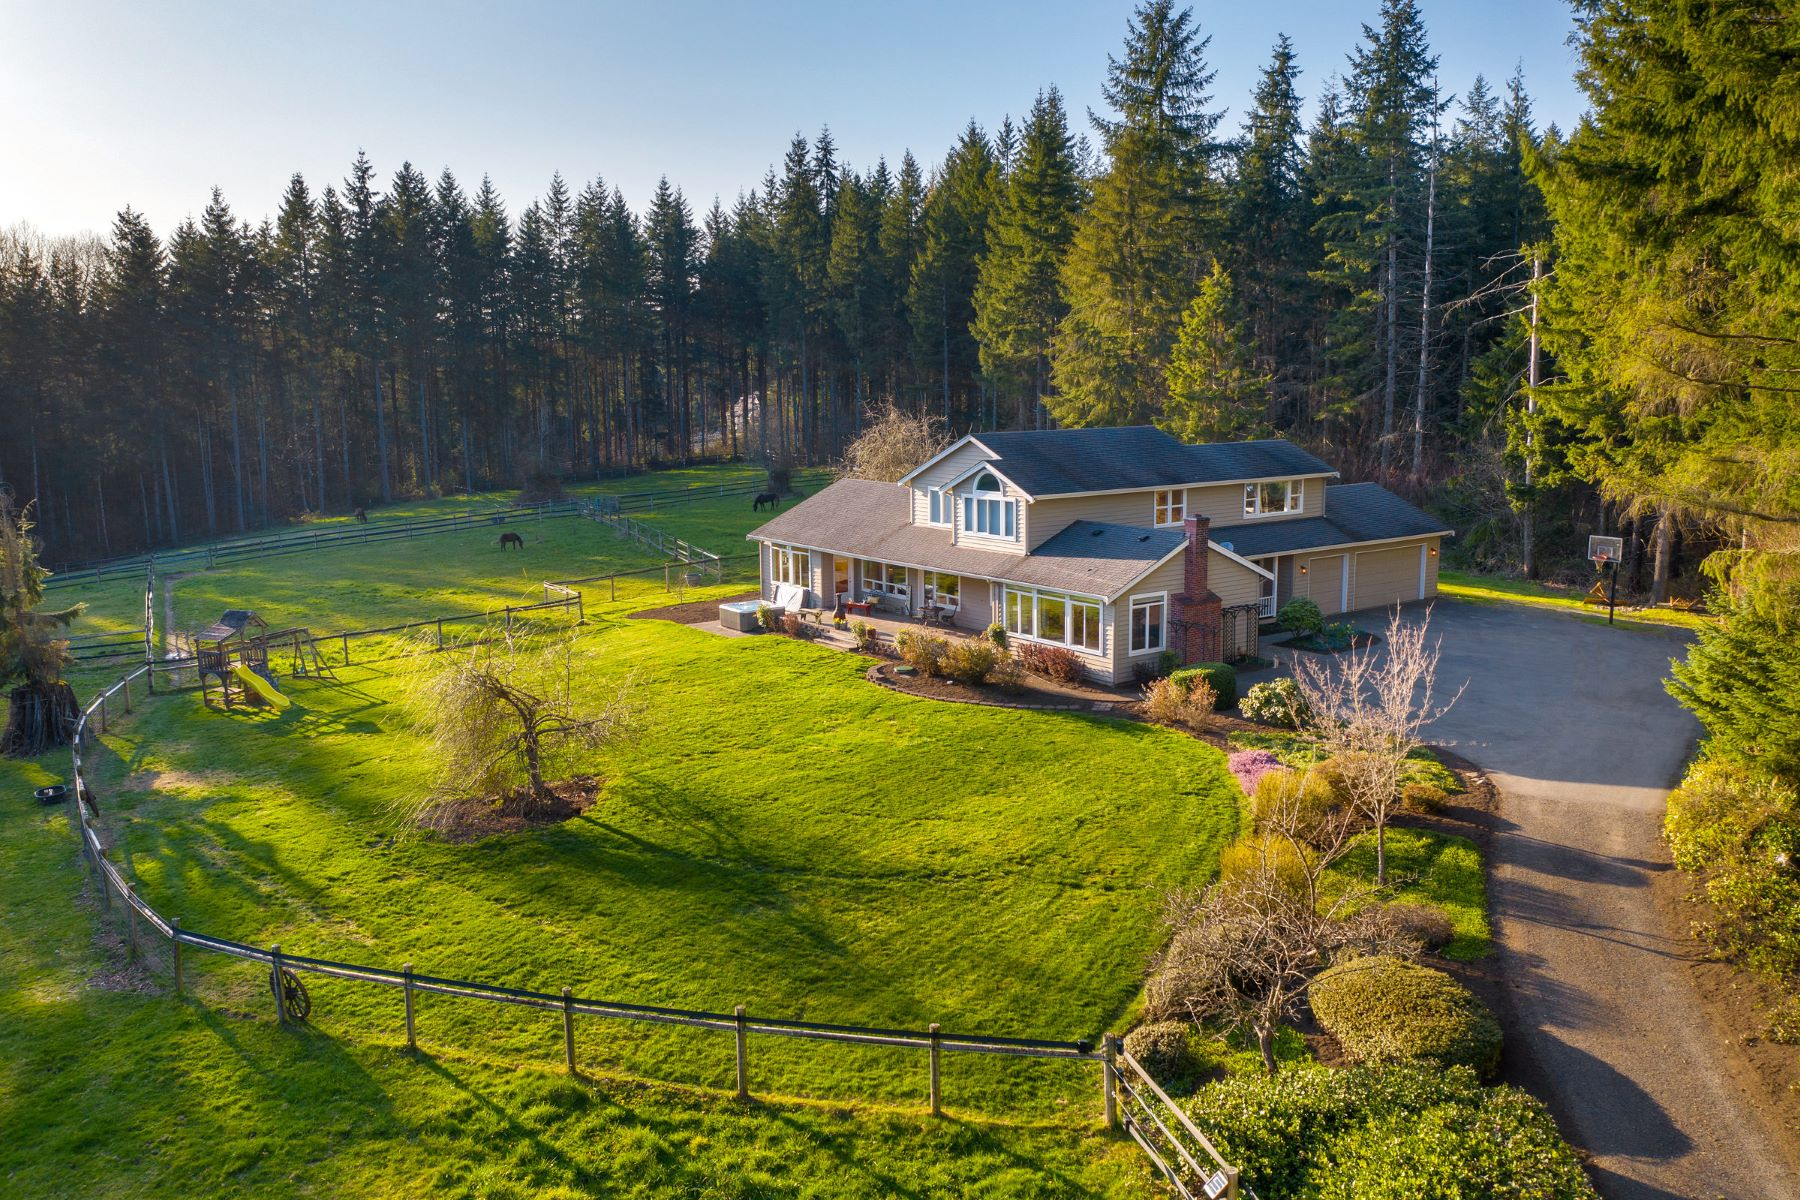 Single Family Homes for Sale at 5 Star Farm 35015 NE Moss Creek Way, Carnation, Washington 98014 United States